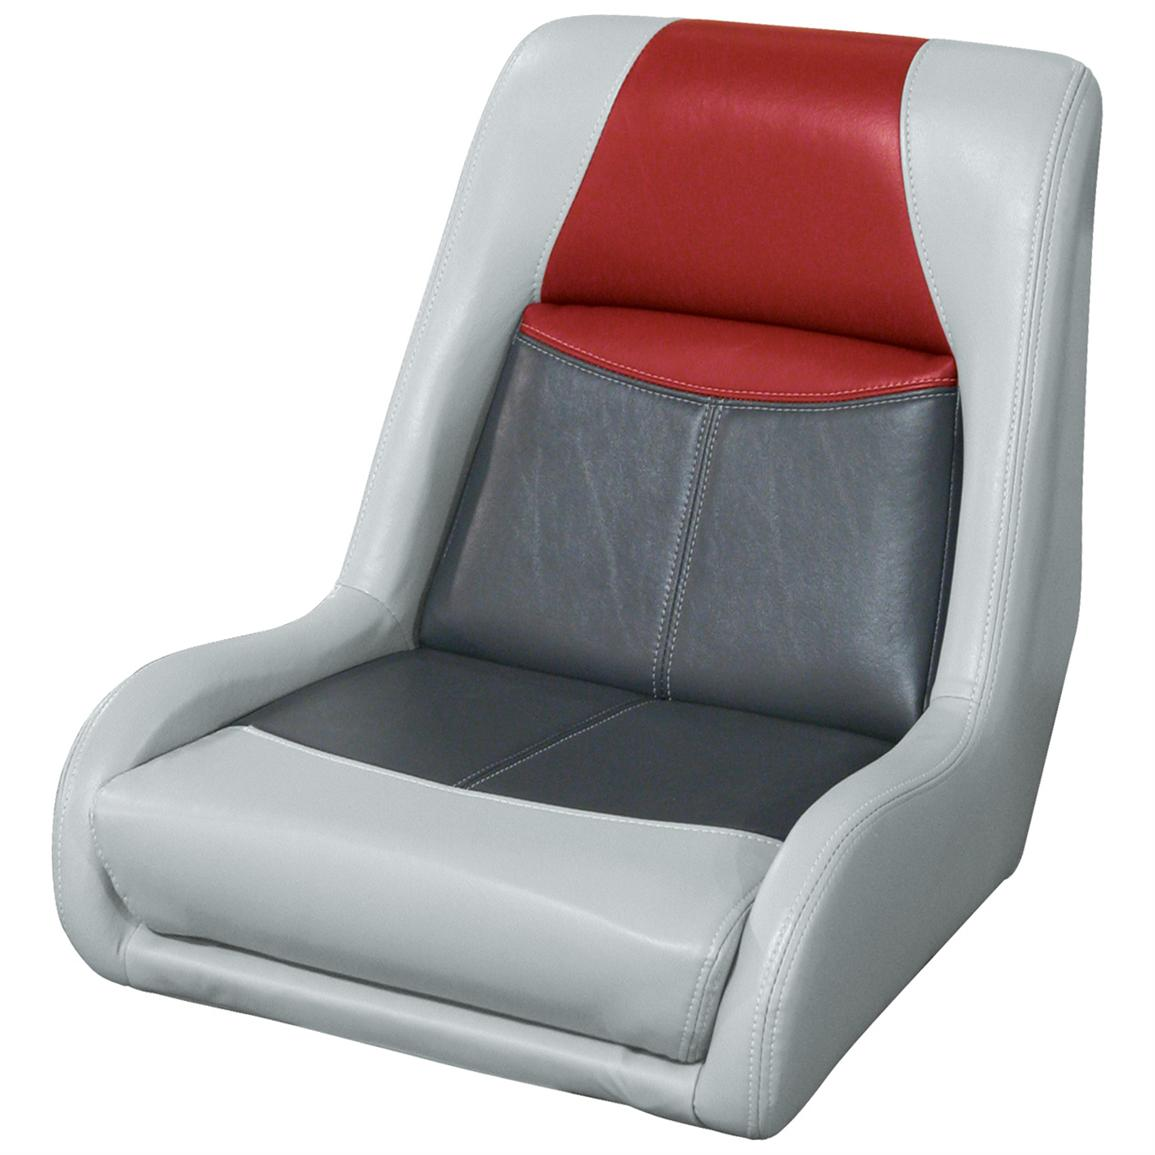 Wise® Blast-Off™ Series Swept Back Bass Bucket Seat, Grey / Charcoal / Red